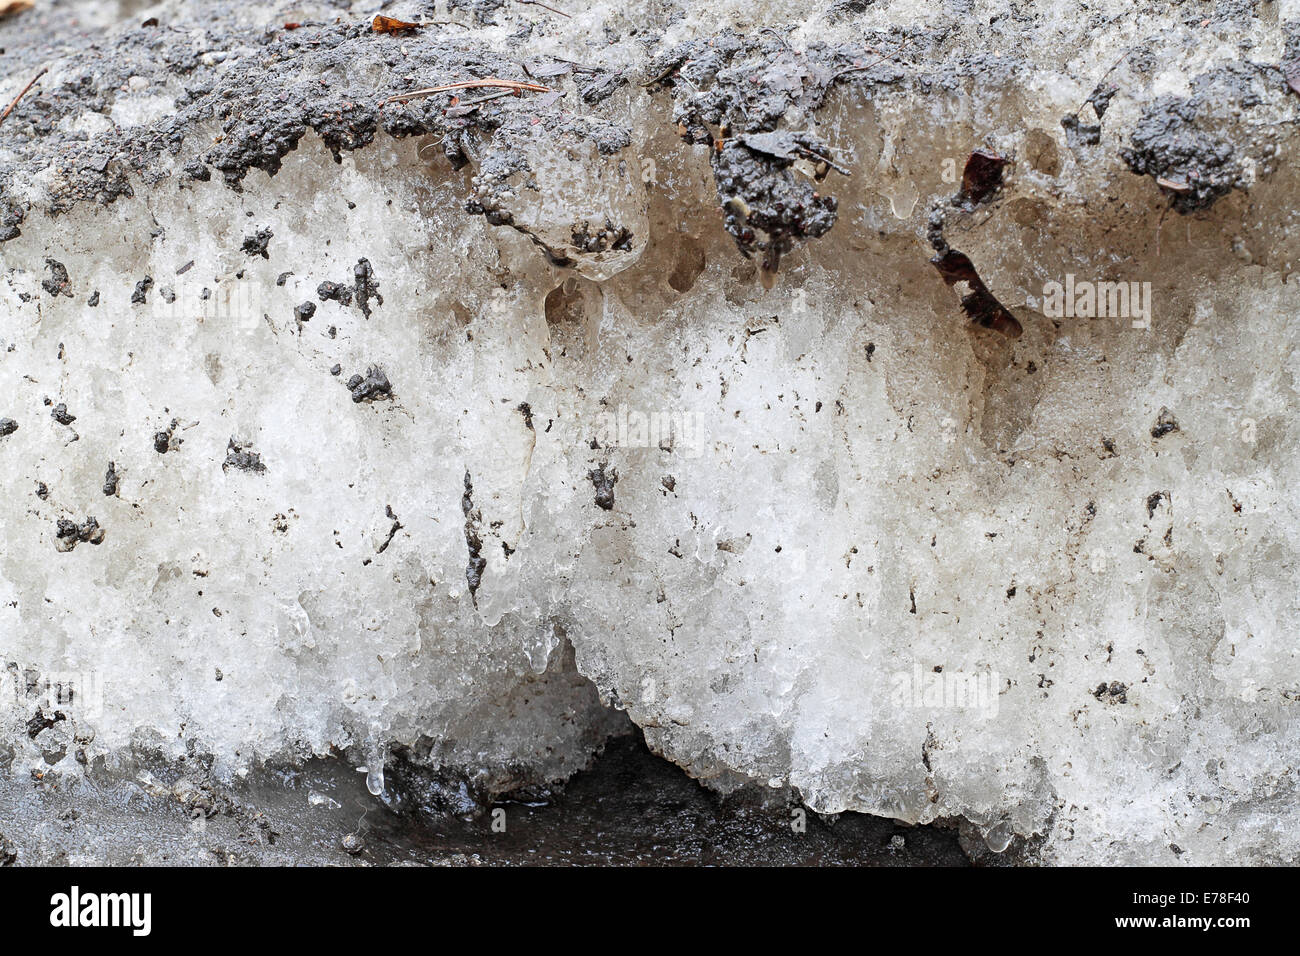 Spring dirty snow closeup - Stock Image